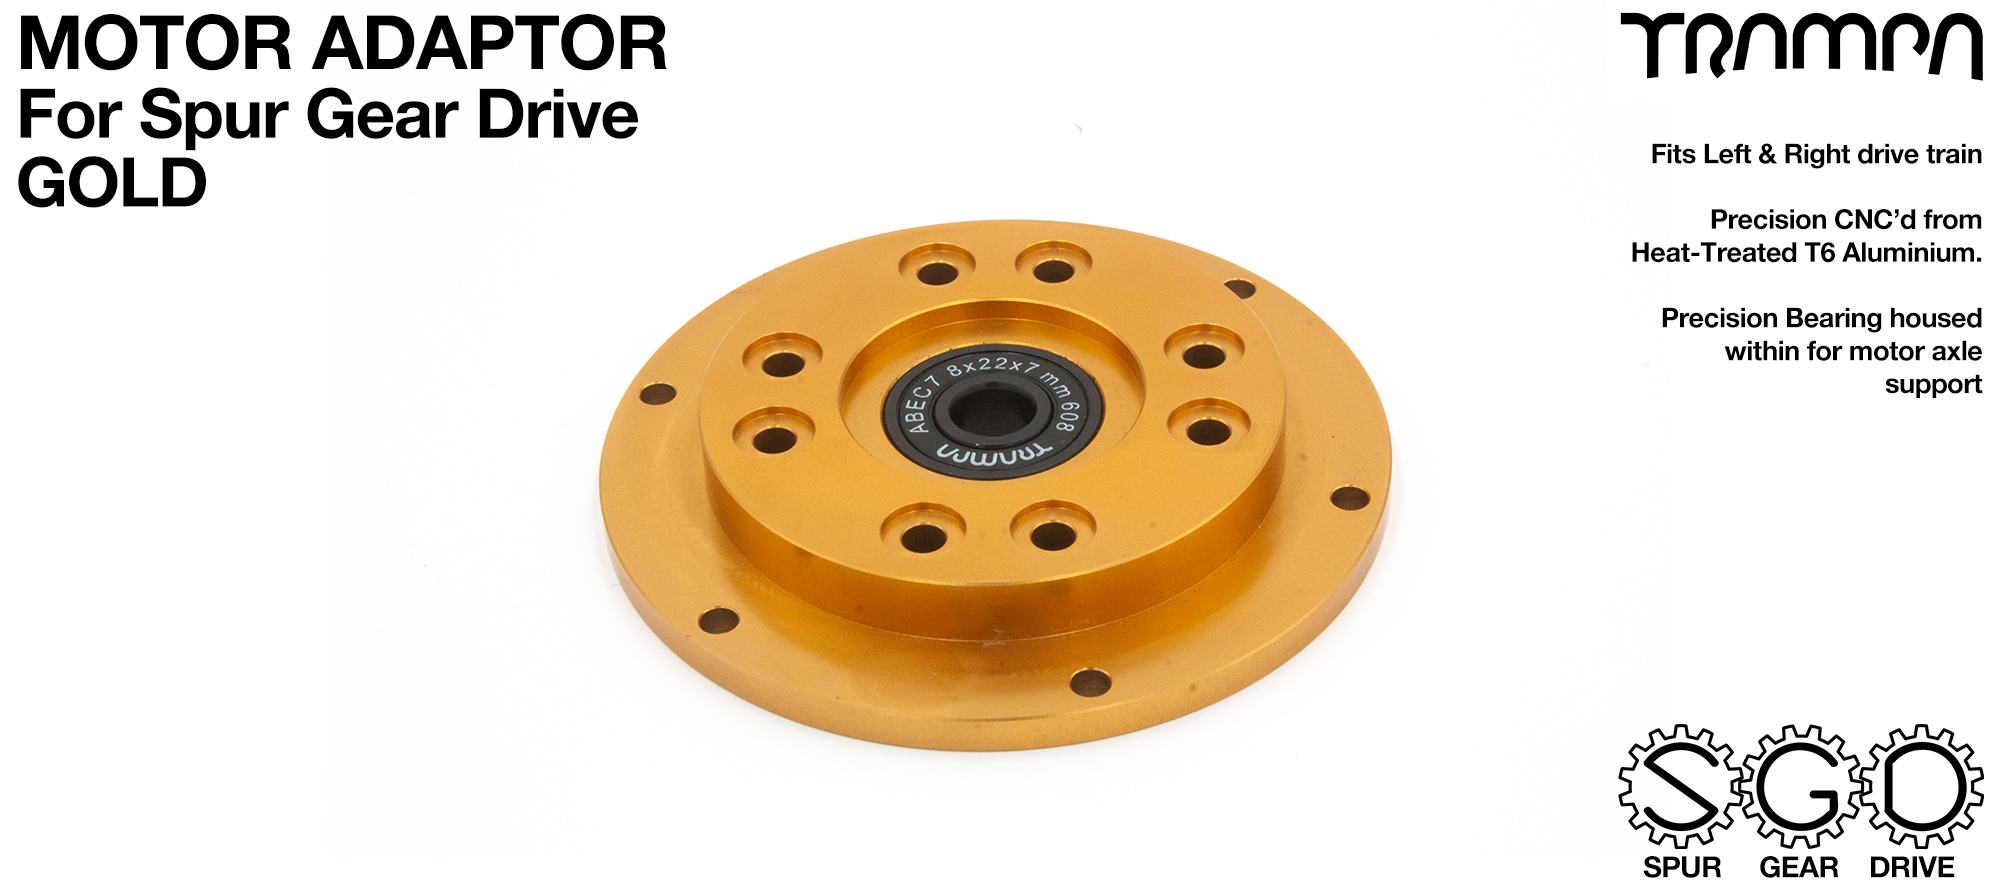 GOLD Motor Adapter plate